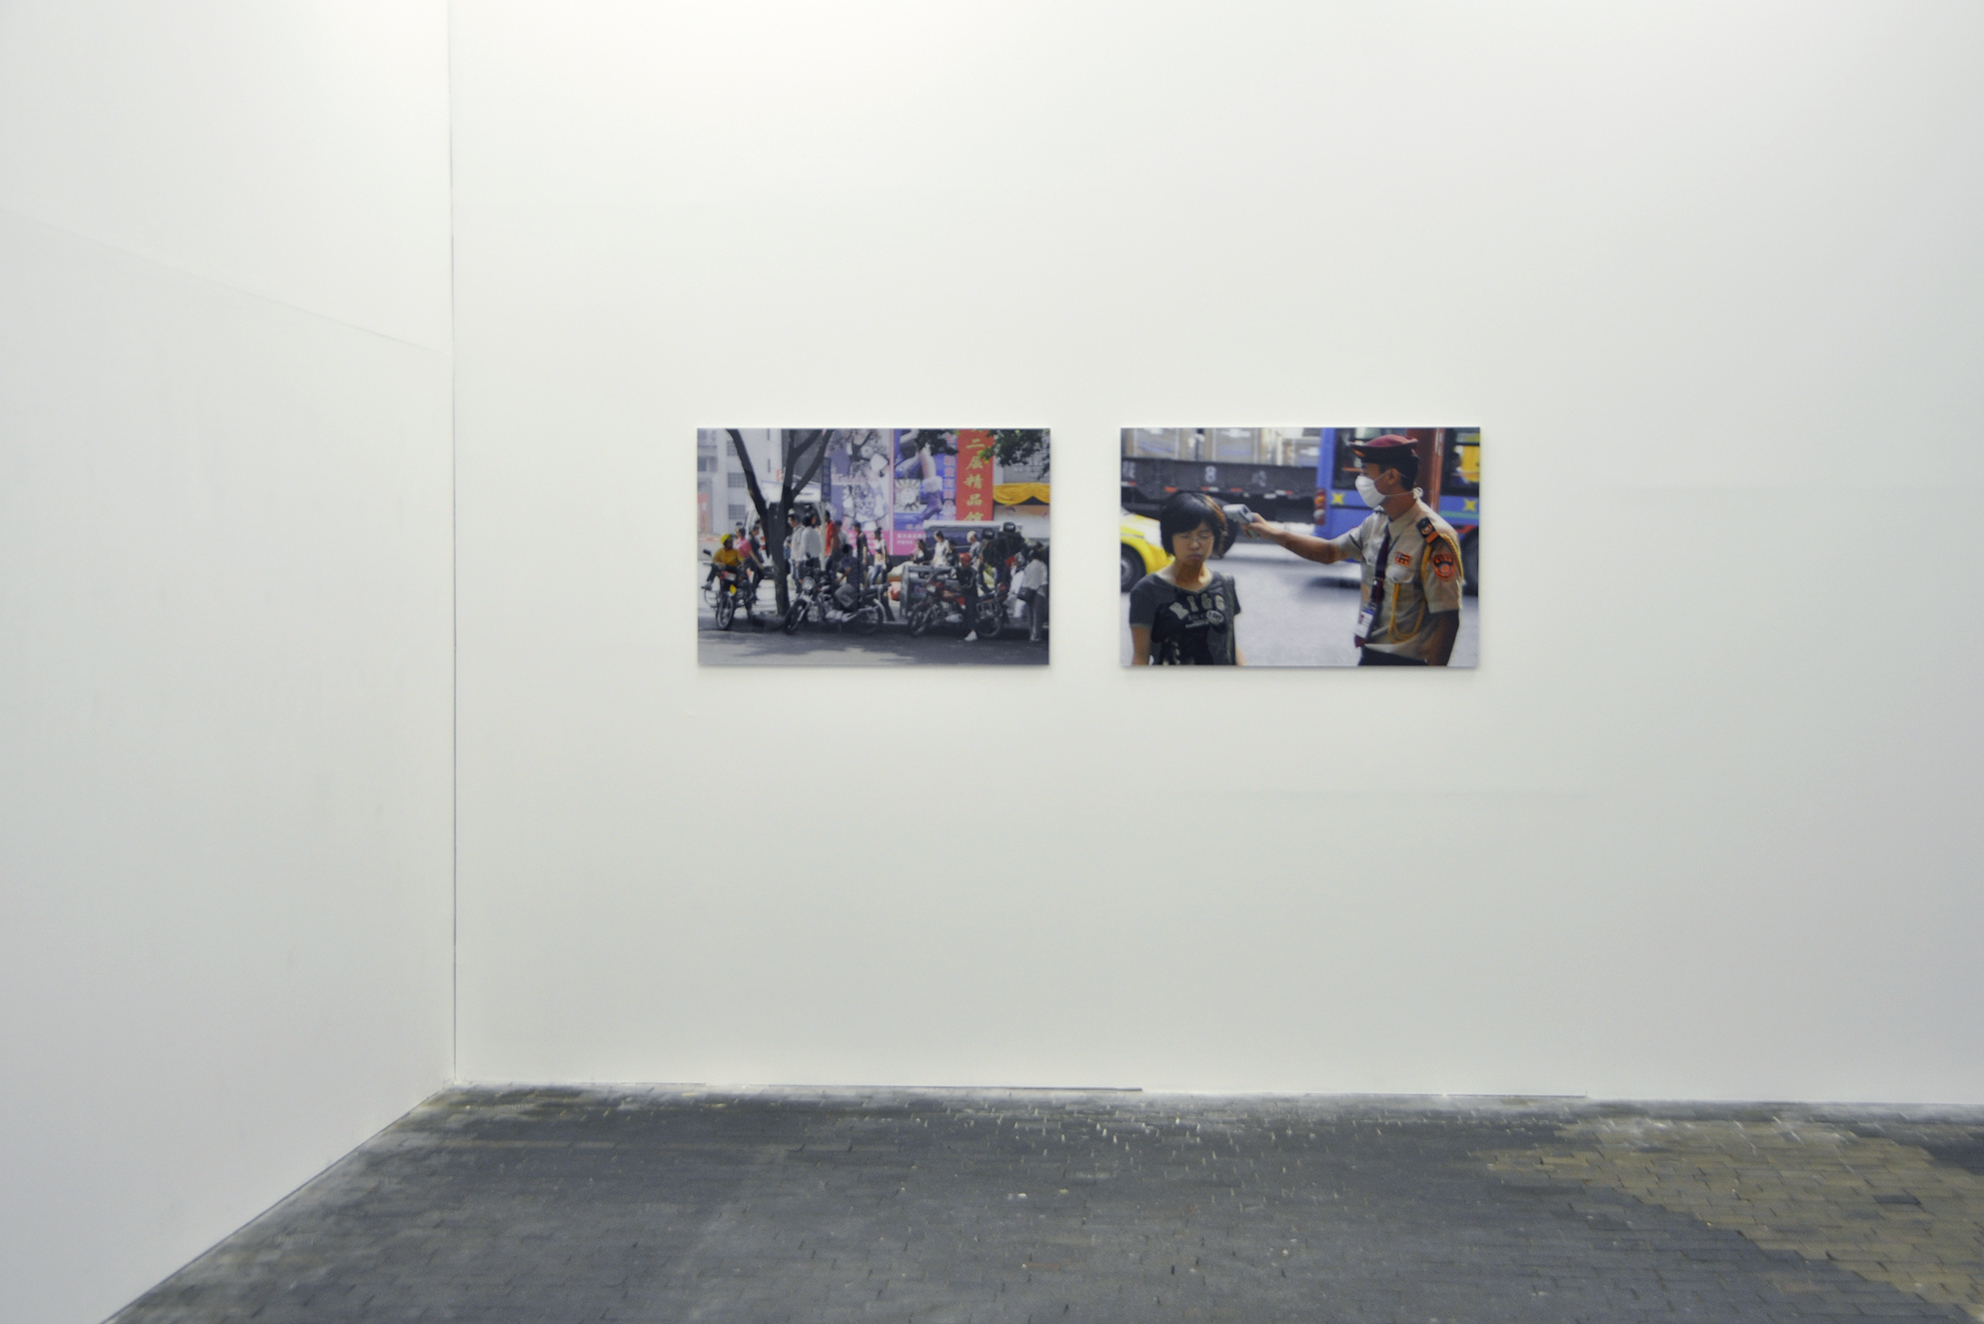 Chongqing, series of 3 photographs, inkjet print / PVC and Plexiglas, 67 x 100 x 1 cm, 2010, in collaboration with Swann Thommen